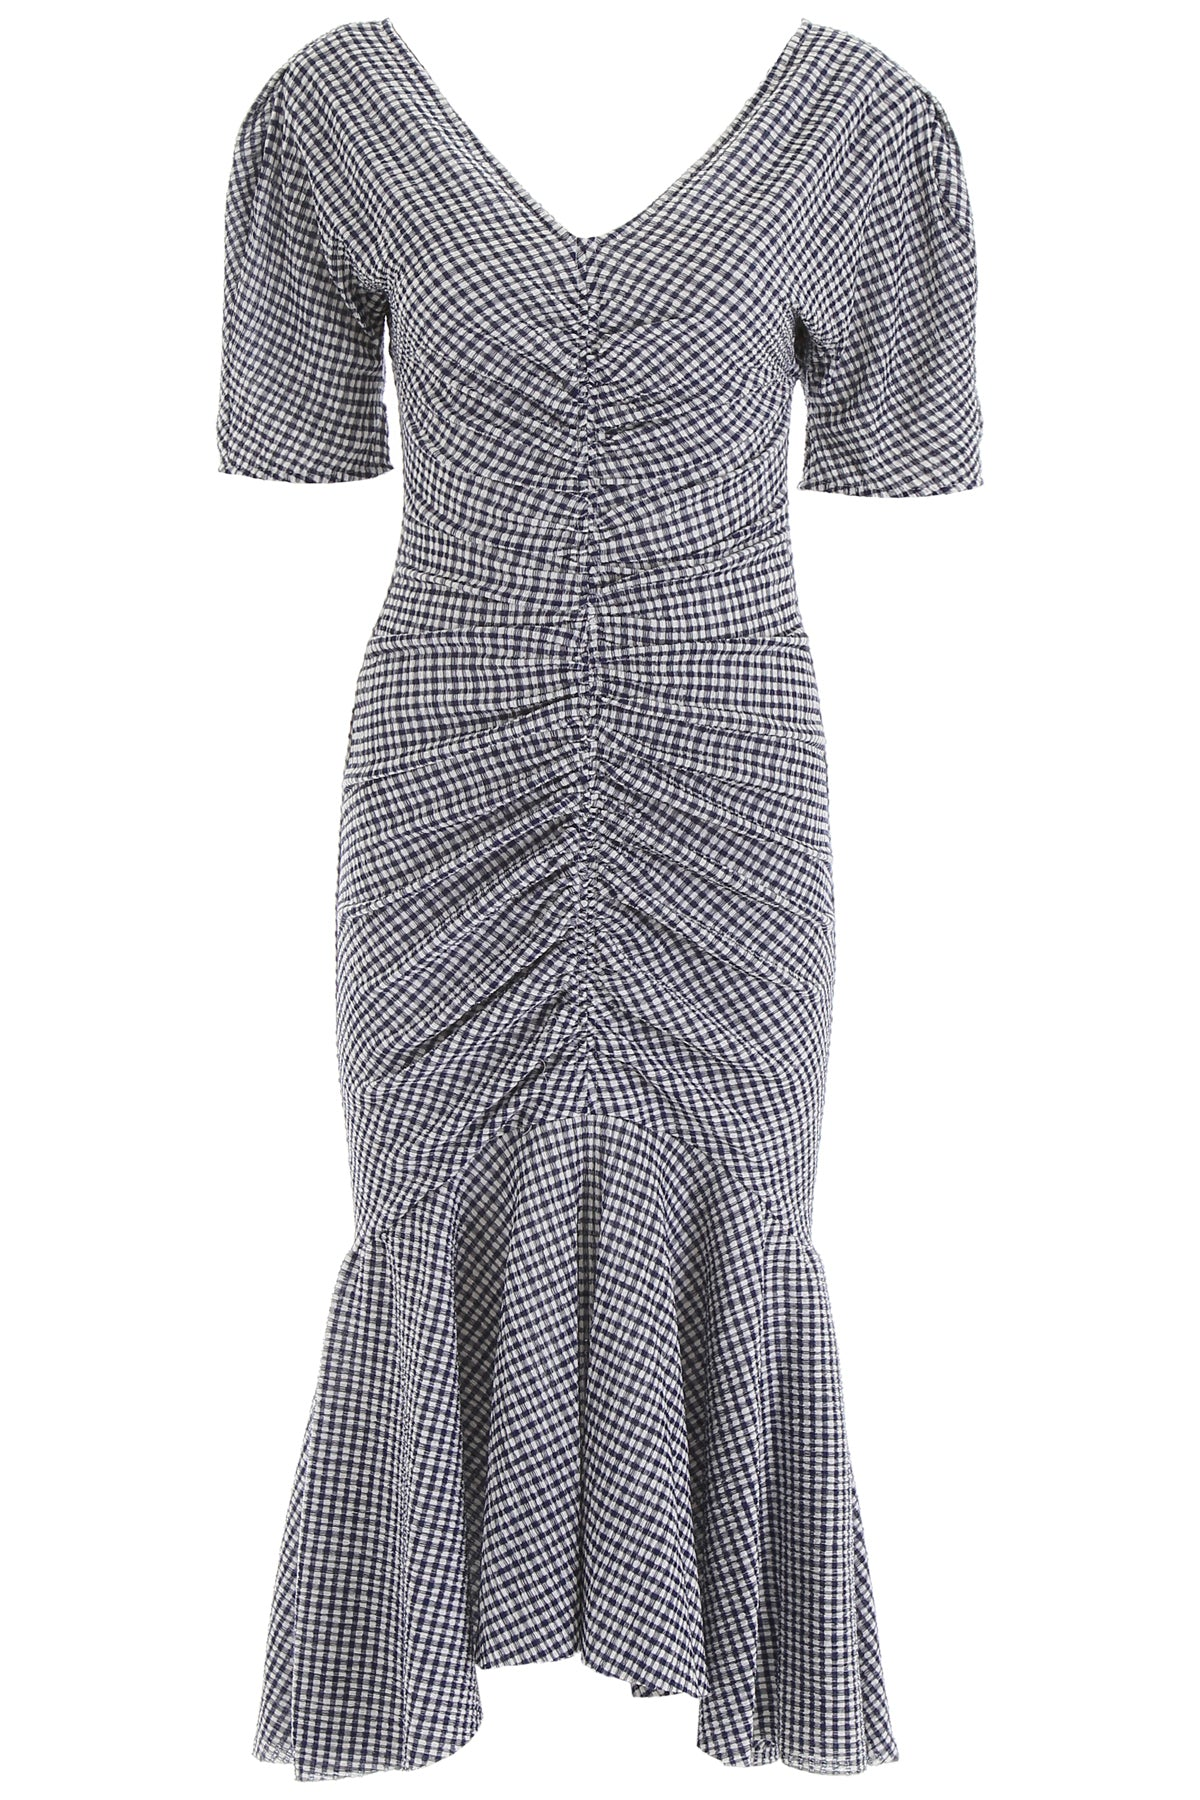 Staud Dresses STAUD V NECK GINGHAM PRINT DRESS